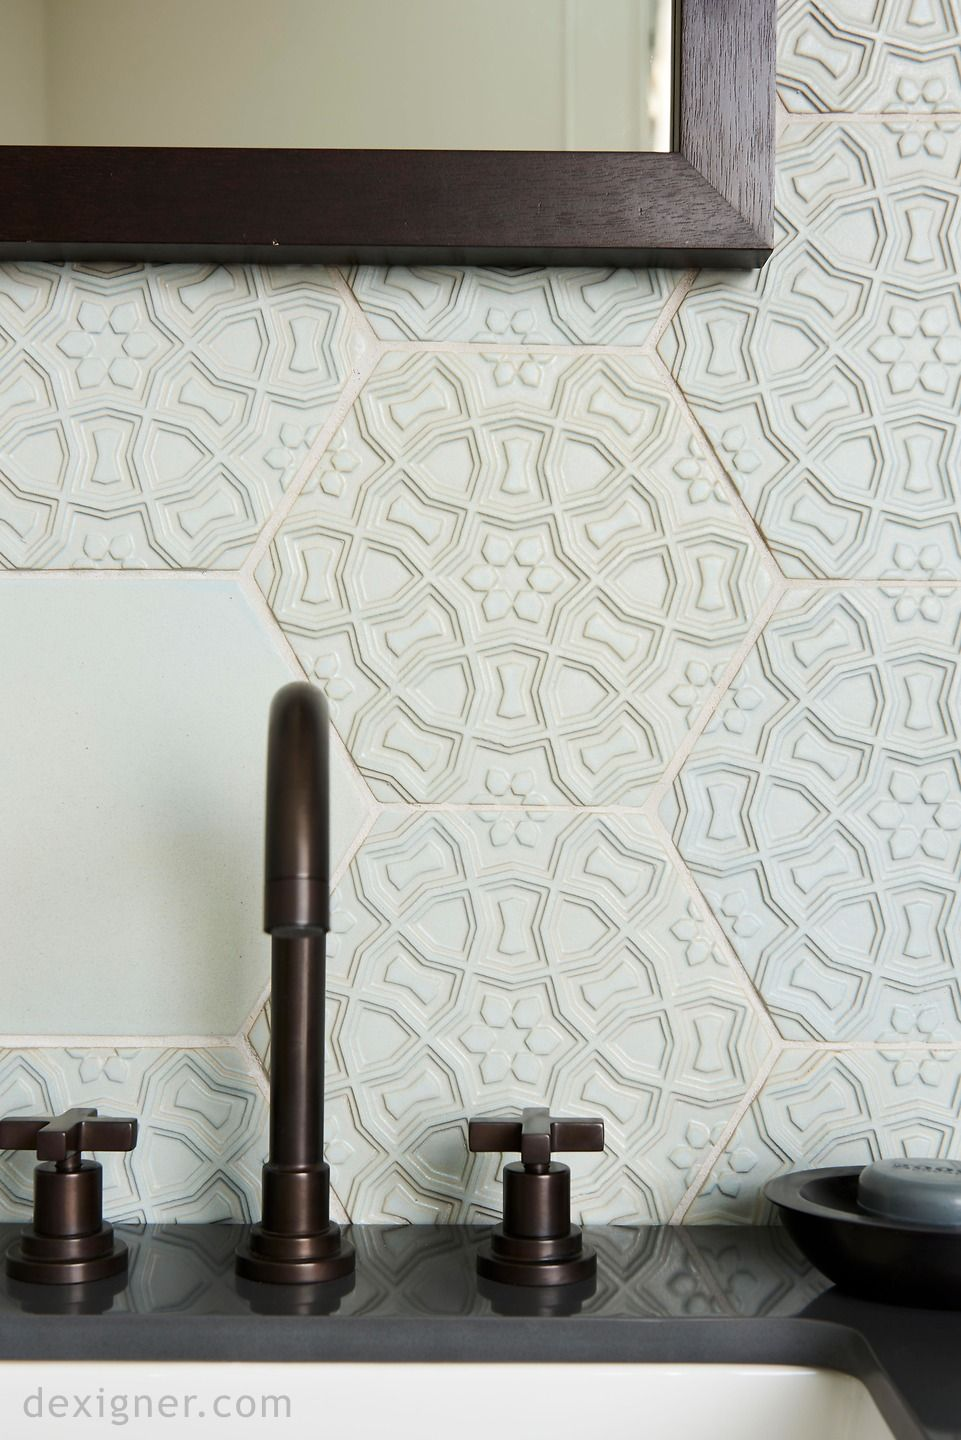 Walker zanger andalucia collection residential interiors walker zanger andalucia collection dailygadgetfo Gallery